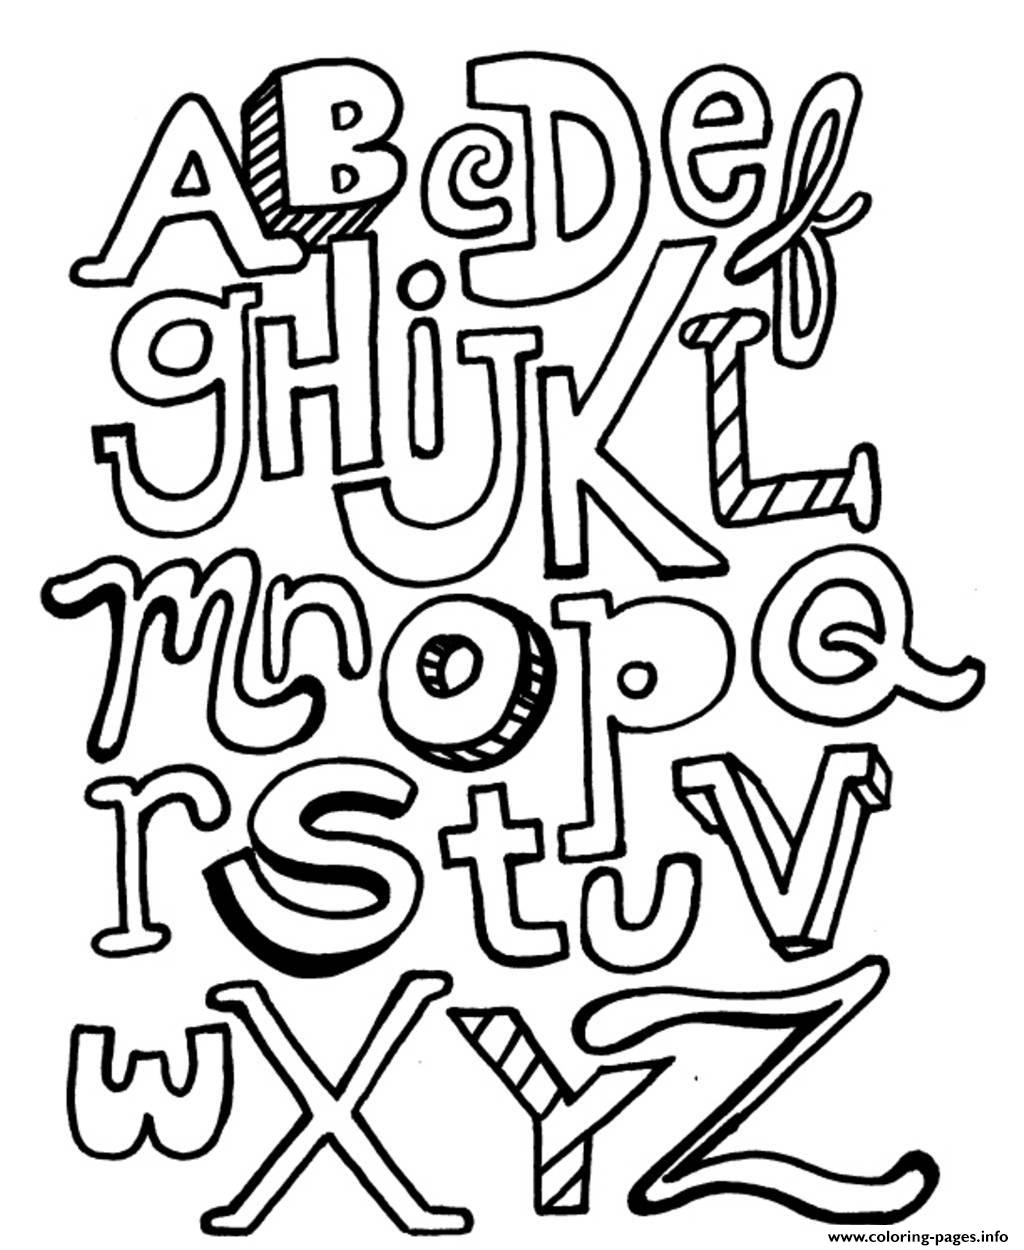 Alphabet S Printable Abc Letters3a36 Coloring Pages Printable